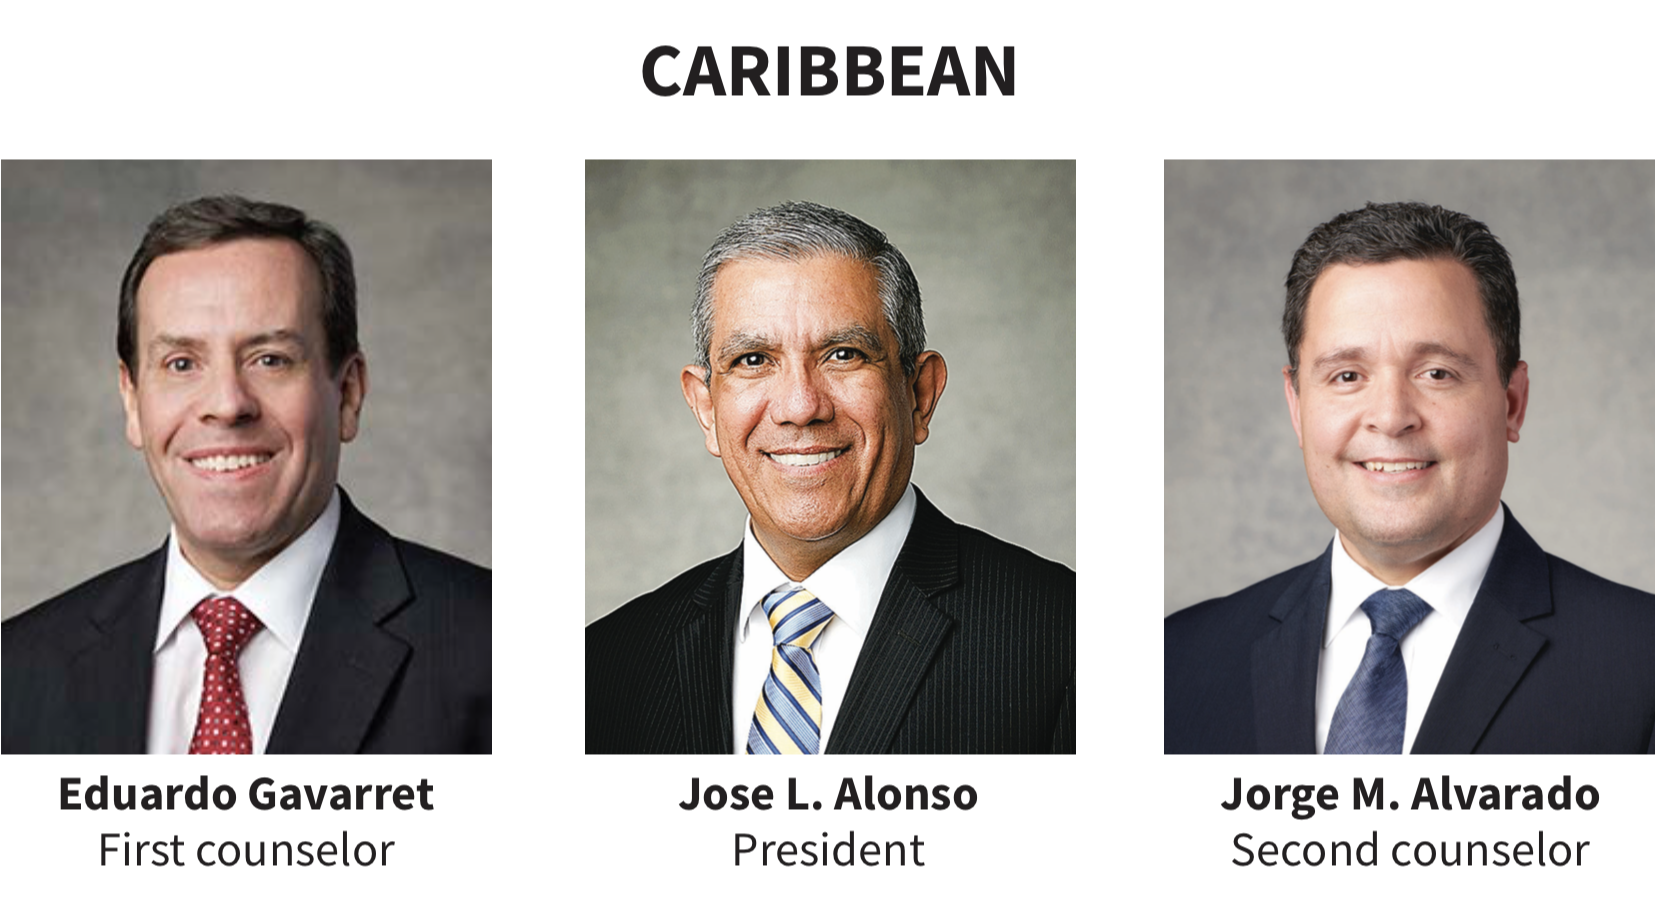 Caribbean area presidency